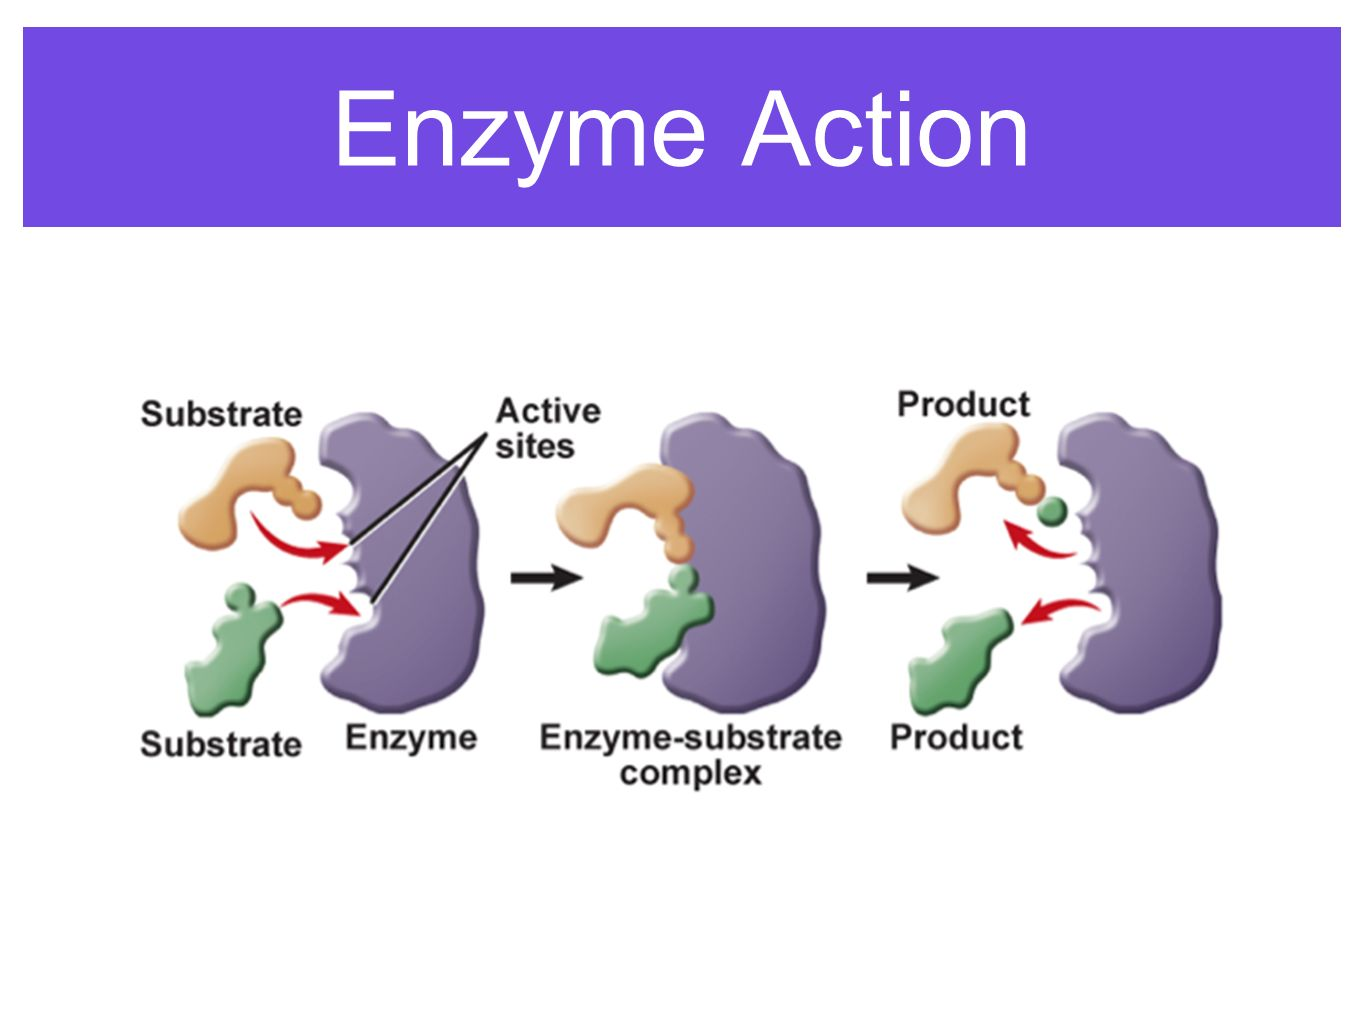 enzyme action The single most important property of enzymes is the ability to increase the rates of reactions occurring in living organisms, a property known as catalytic activitybecause most enzymes are proteins, their activity is affected by factors that disrupt protein structure, as well as by factors that affect catalysts in general.